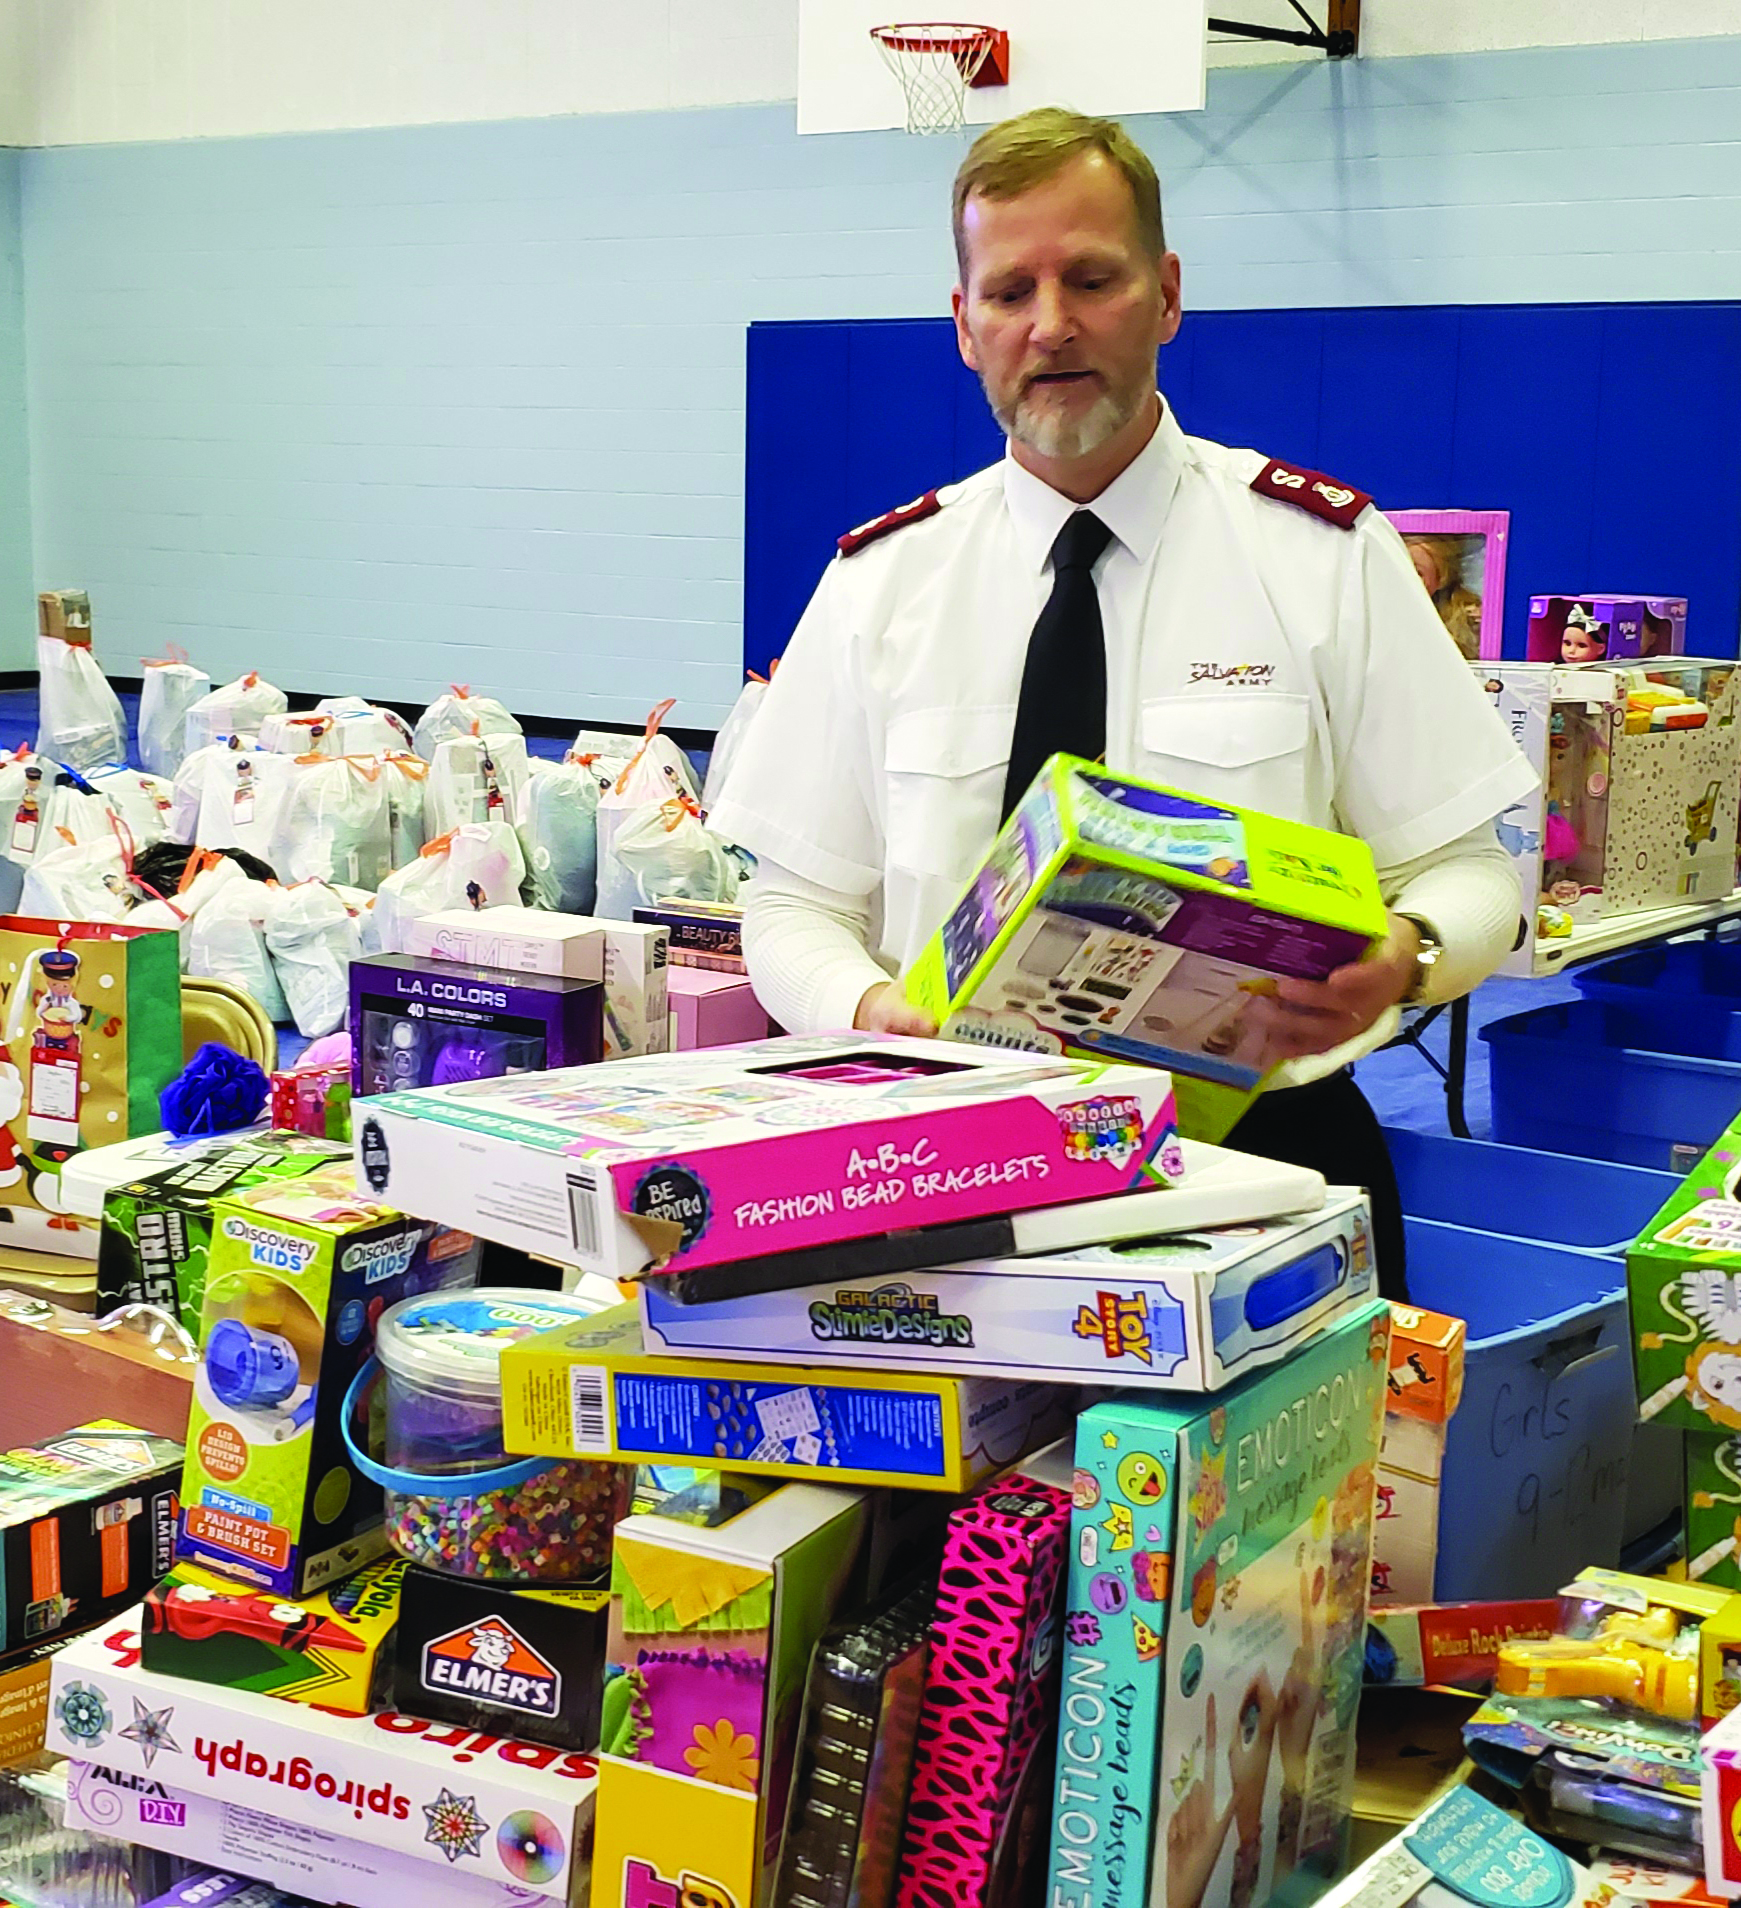 Major John Merchant at the Salvation Army checks toys donated for Christmas toy delivery.